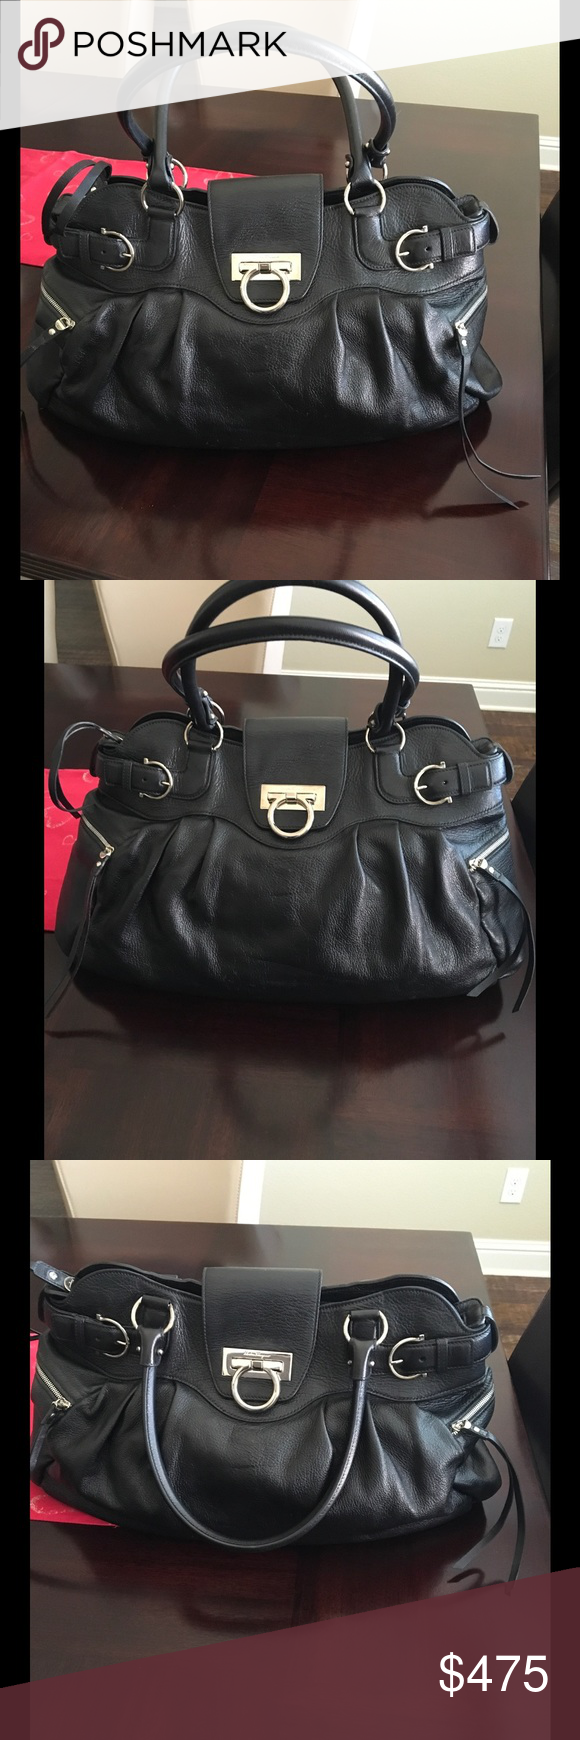 5fcde49196 Salvatore Ferragamo Marisa Shoulder Bag This beautiful bag is in soft  leather and in black